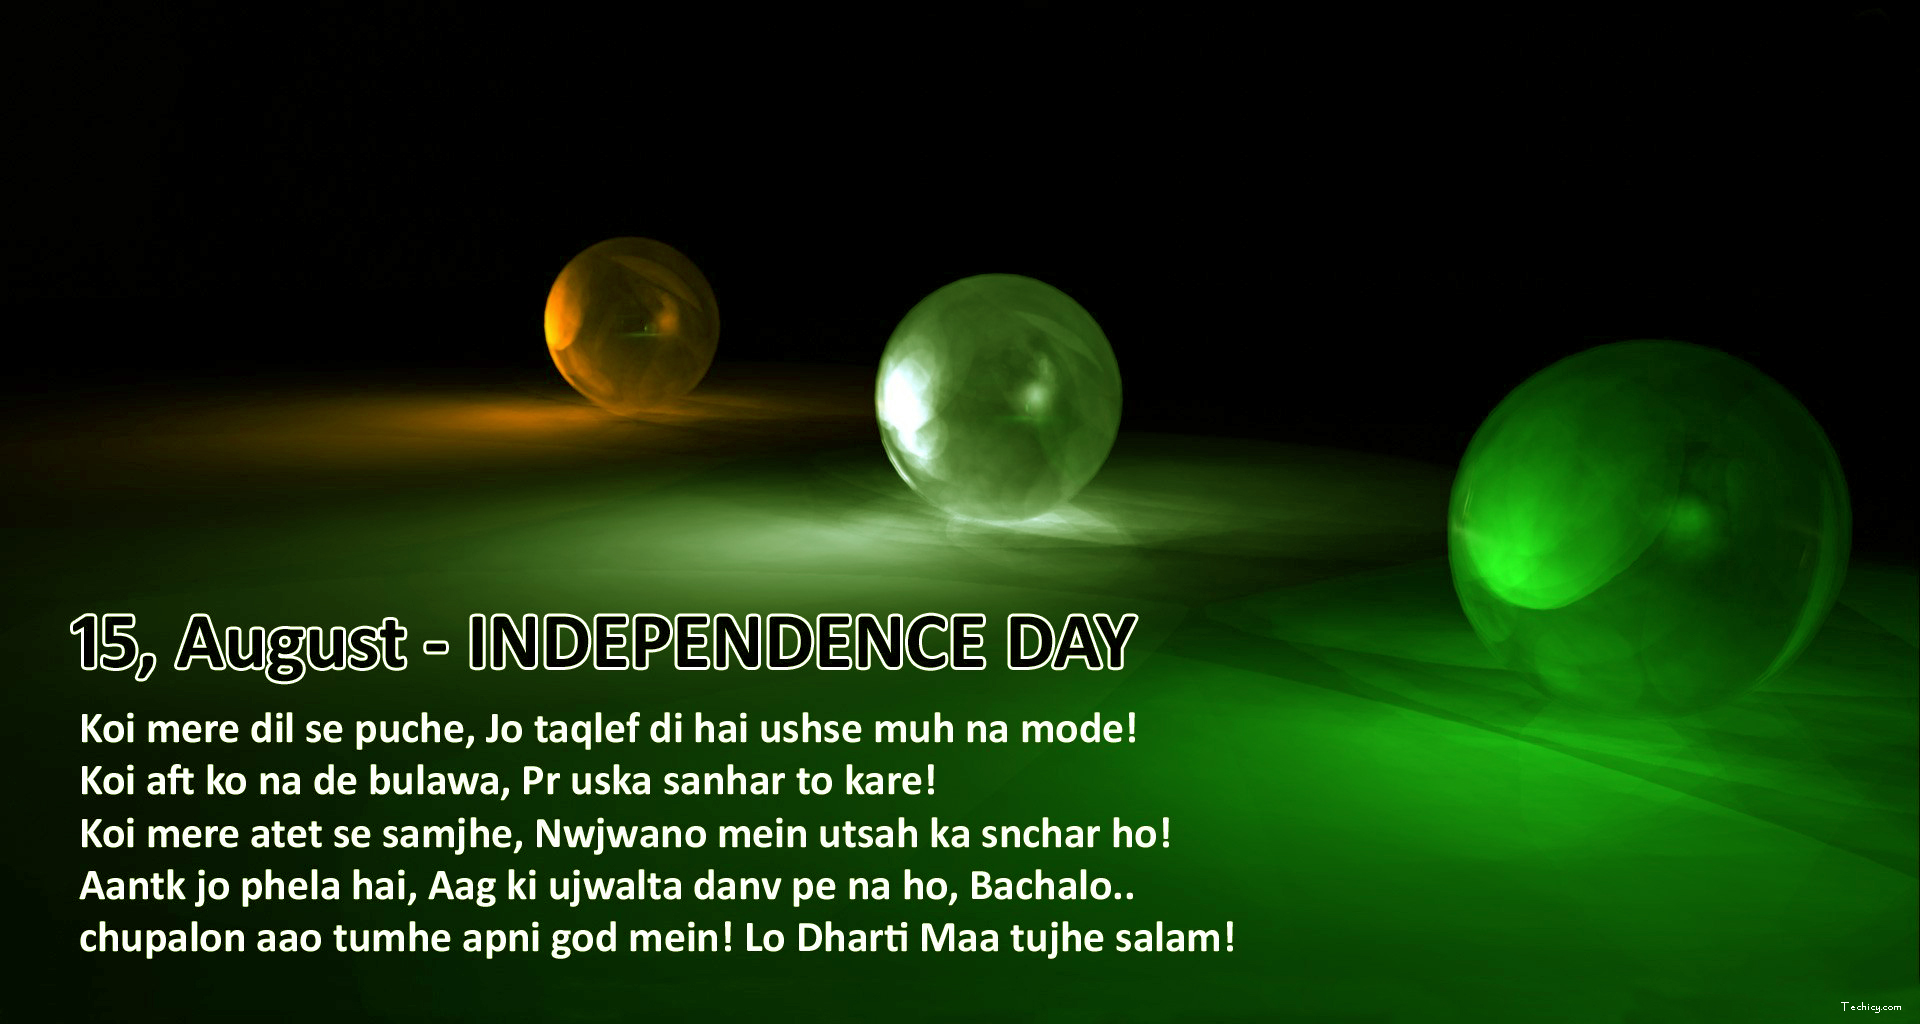 Indian Independence Day WhatsApp Status Images-3